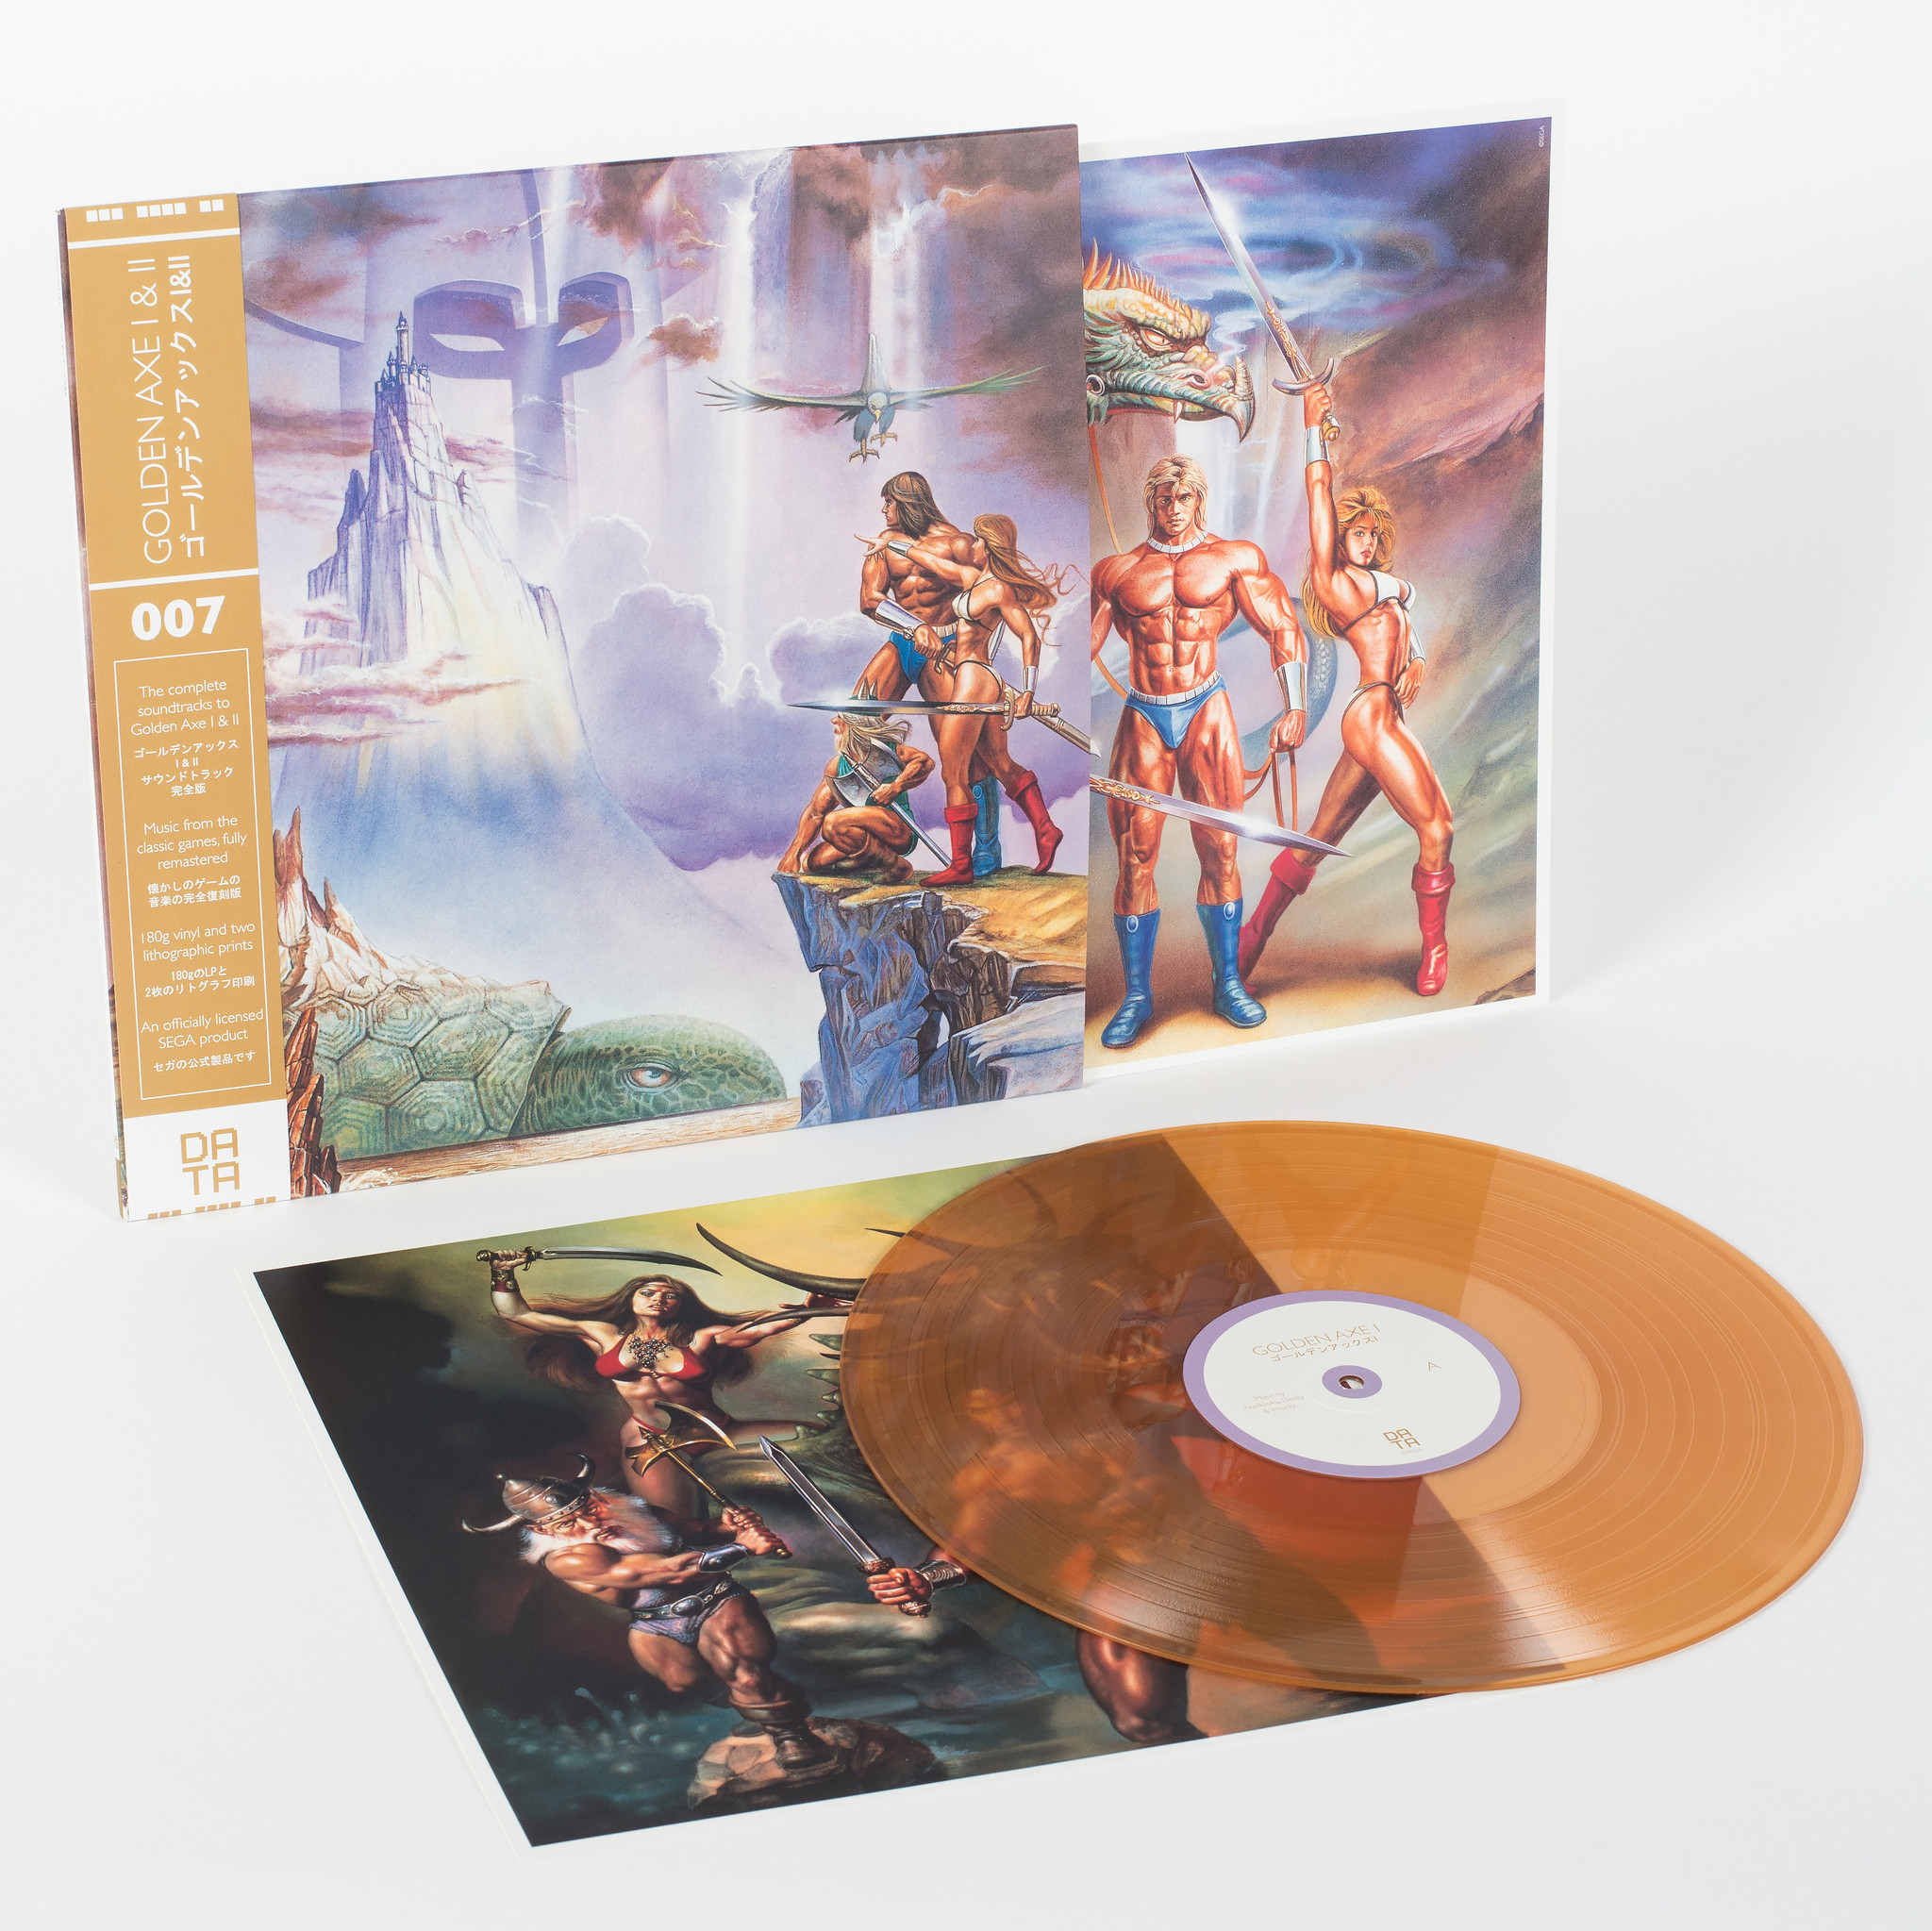 Golden Axe I & II (Original SEGA Soundtrack)